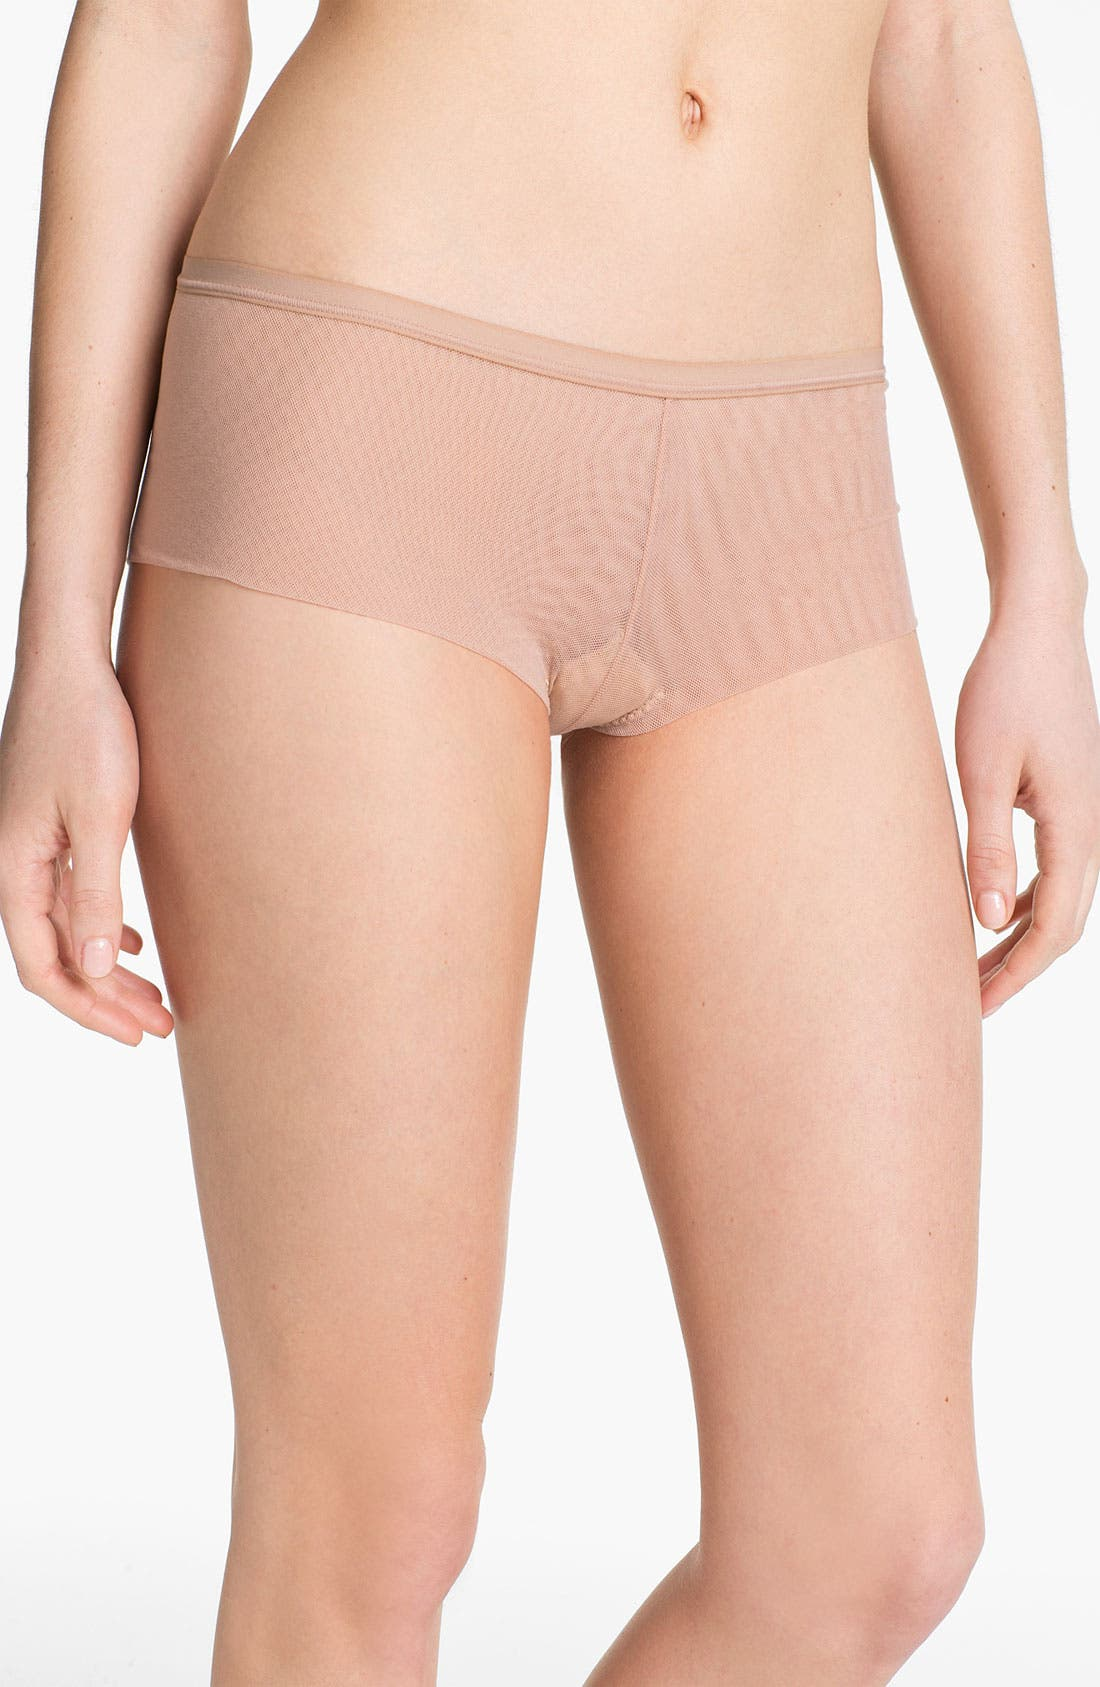 Alternate Image 1 Selected - Cosabella 'New Soire' Girlshorts